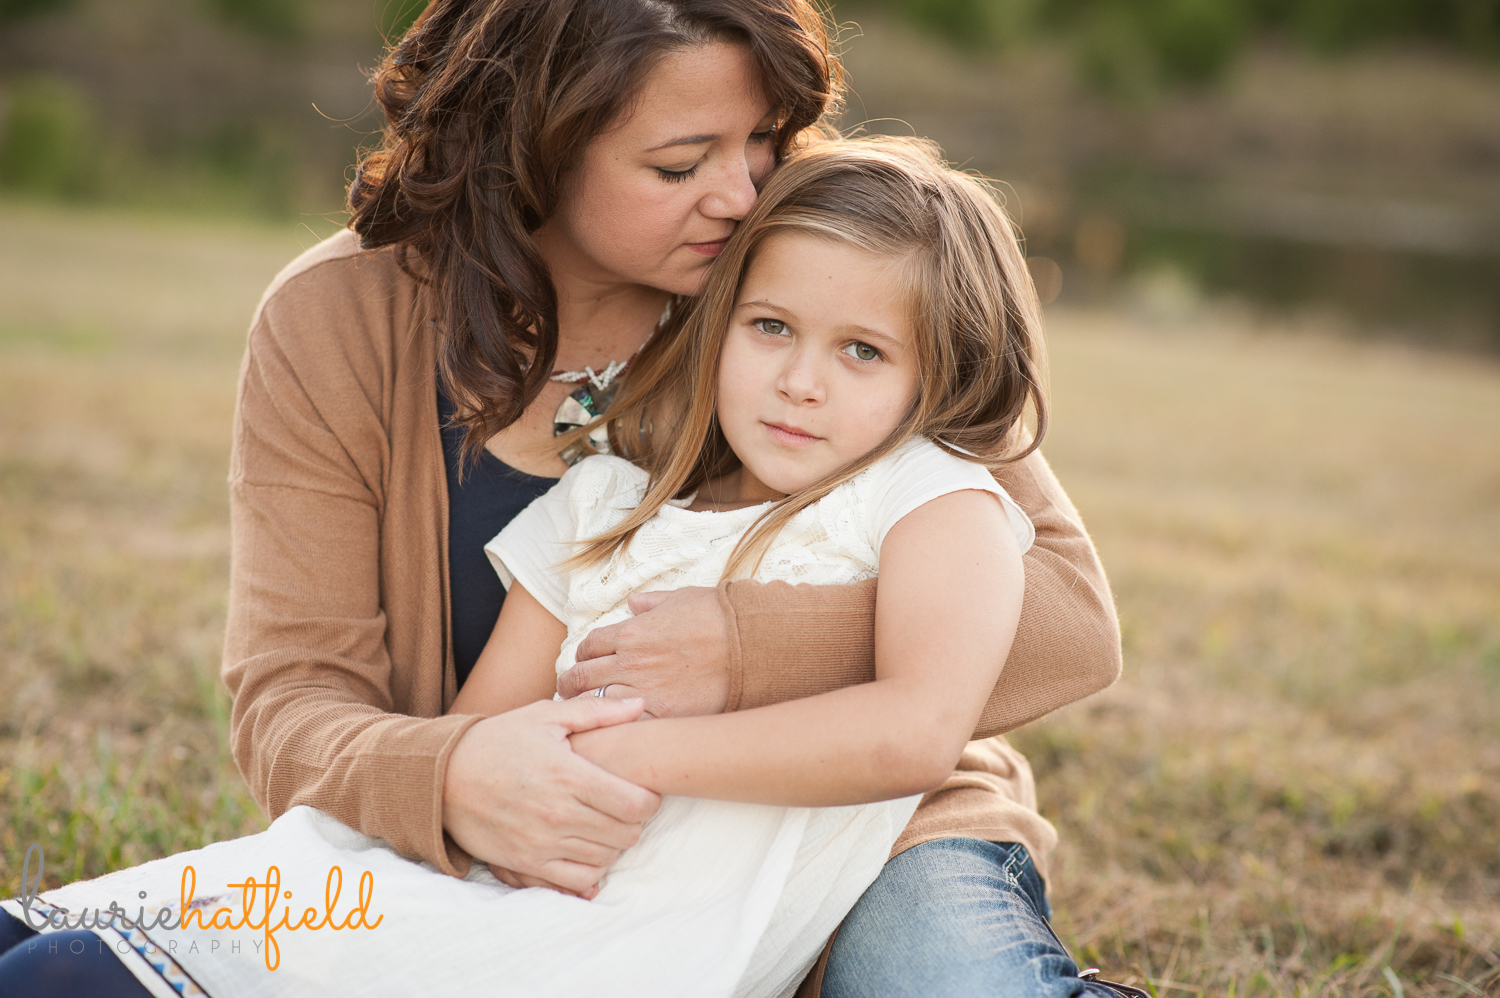 Mom and daughter picture